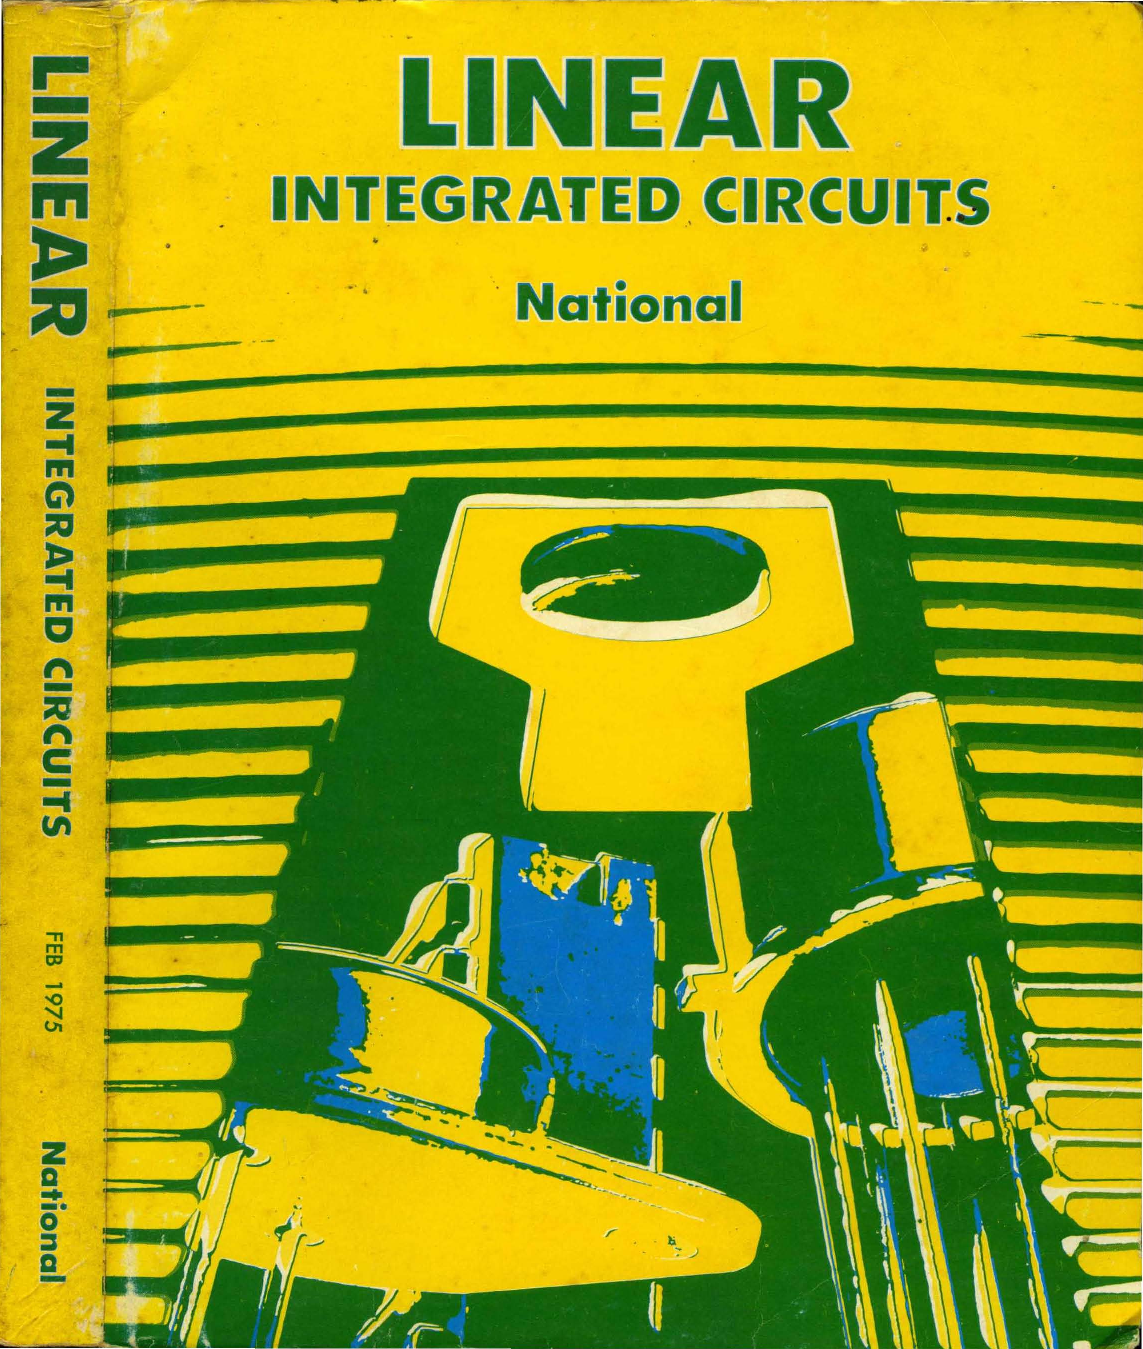 1975 National Linear Integrated Circuits Basic Infrared Transmitter Circuit Lm567